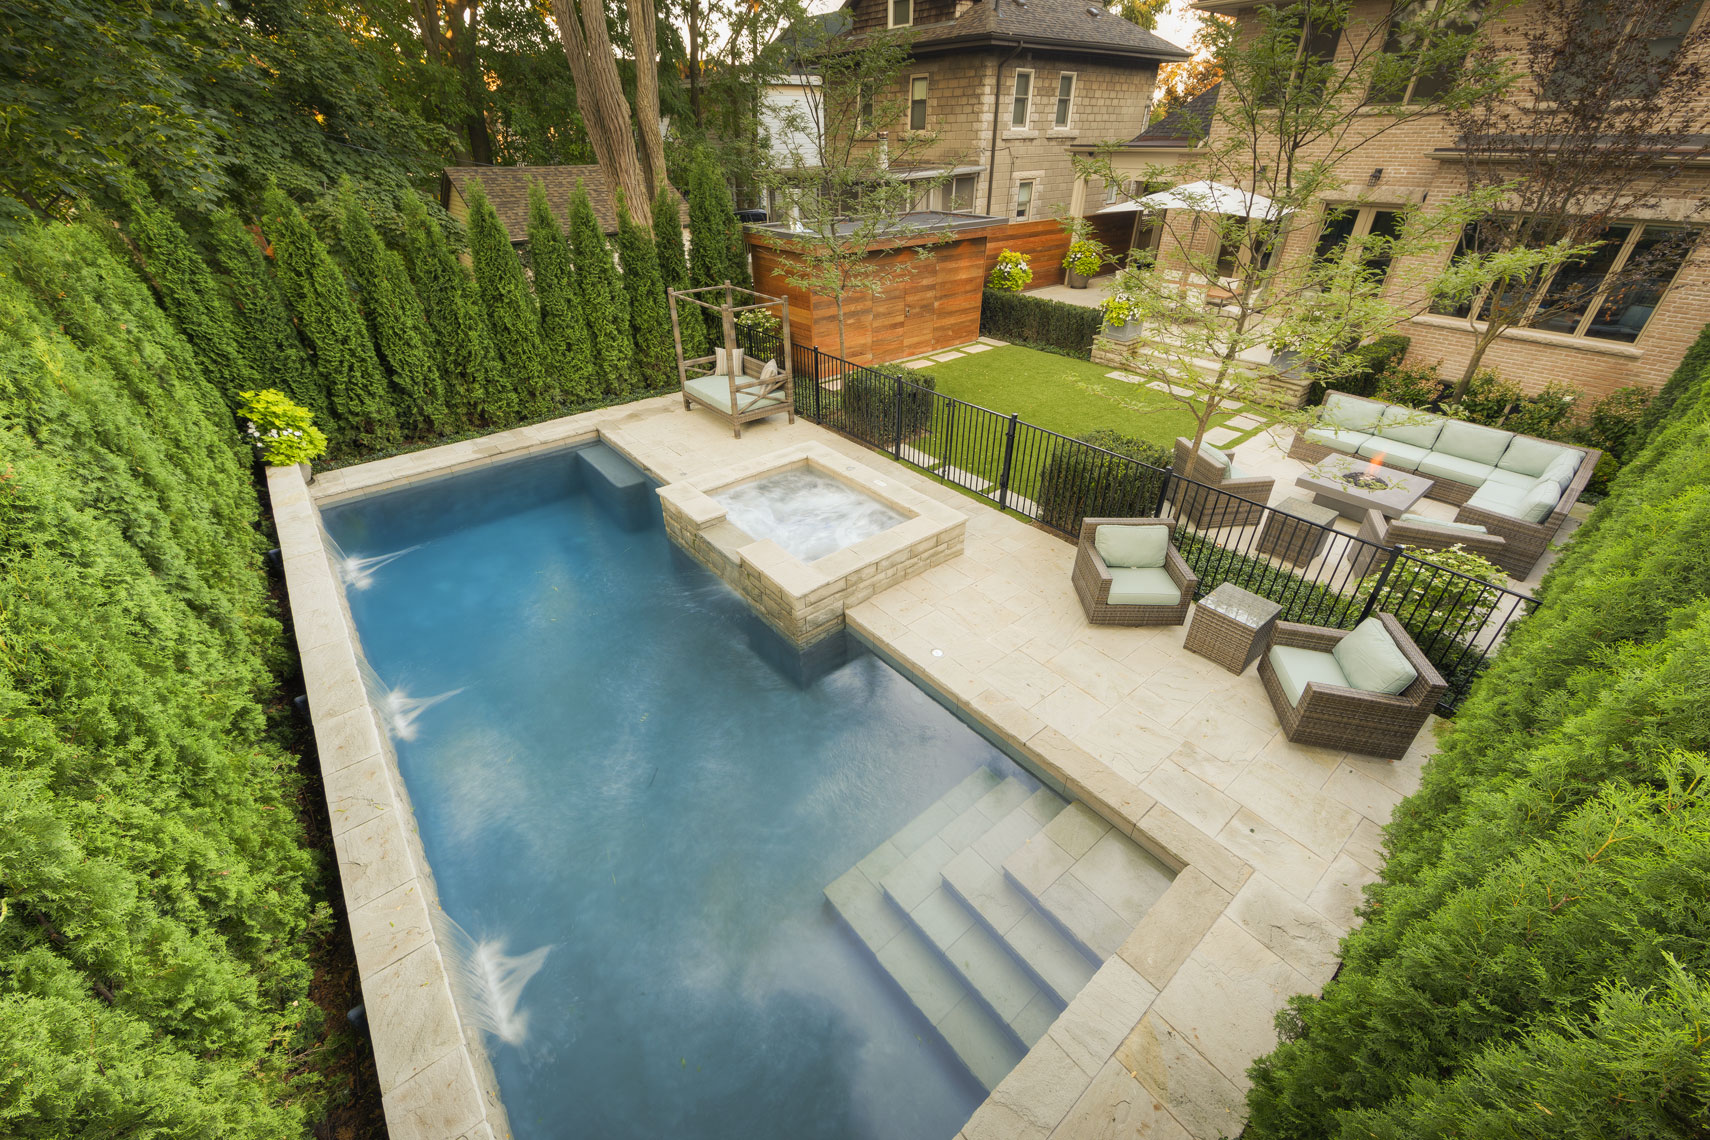 BonaVista Pools & Coivic Landscape Design